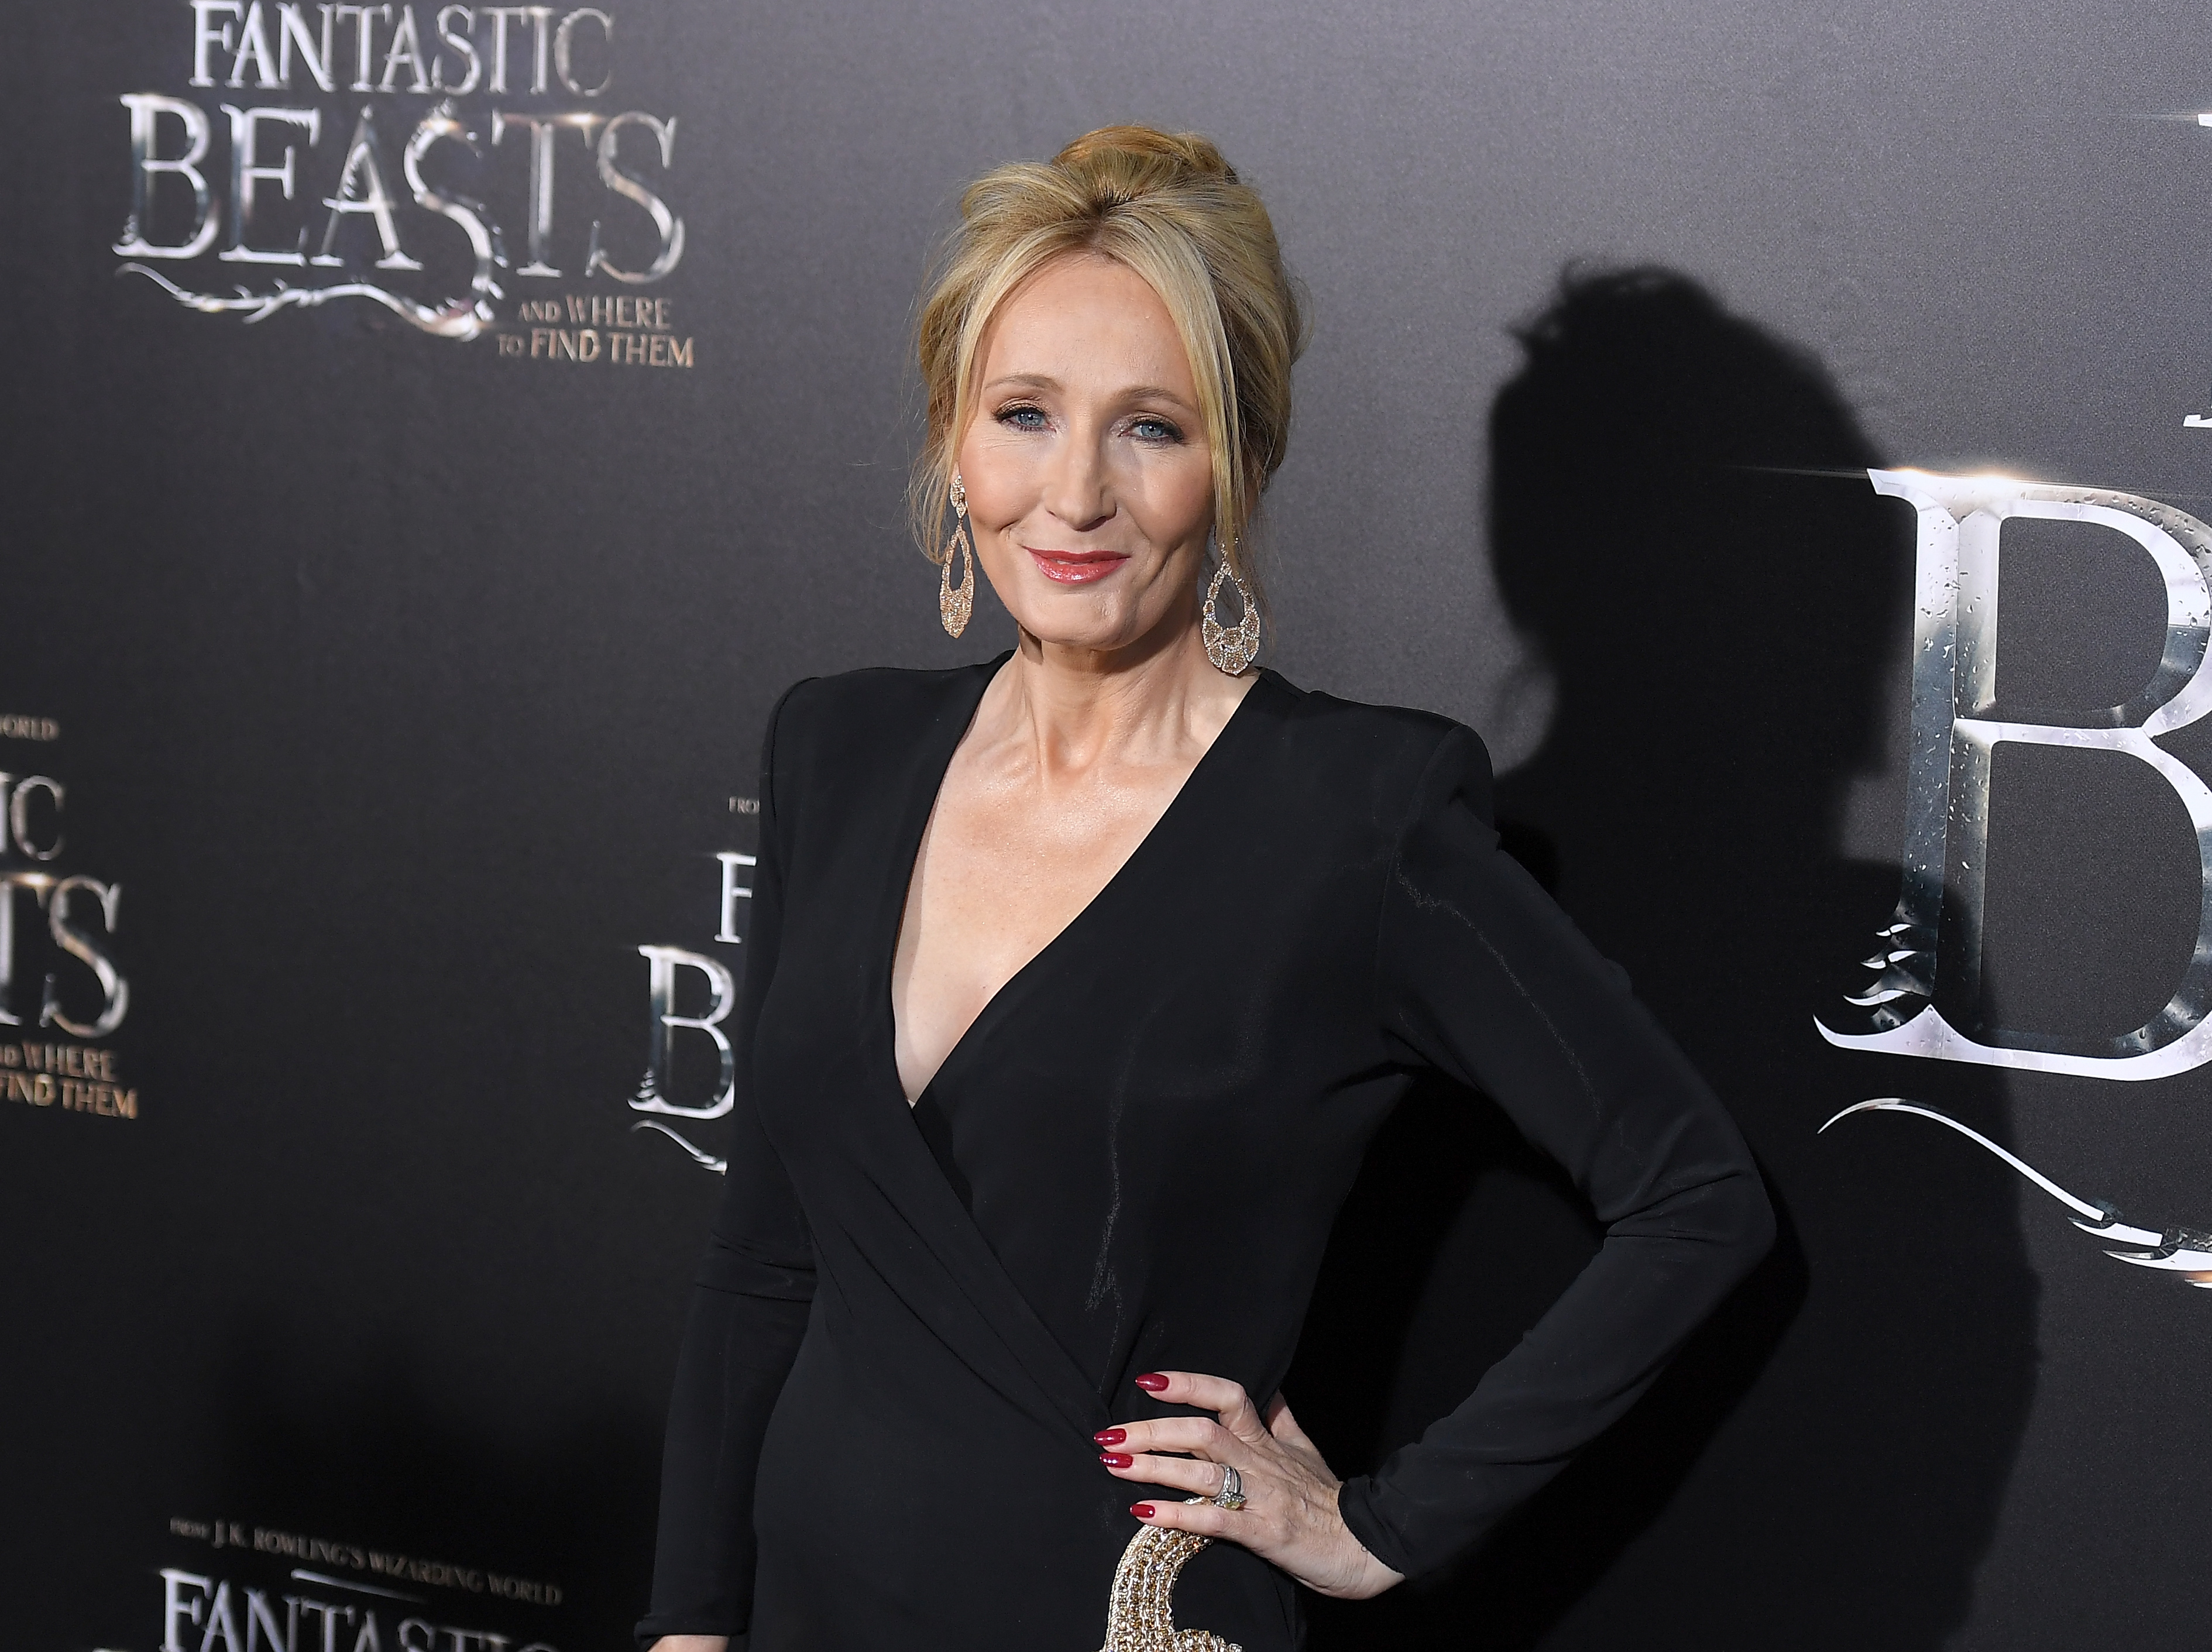 15 jk rowling quotes that will inspire you to get writing